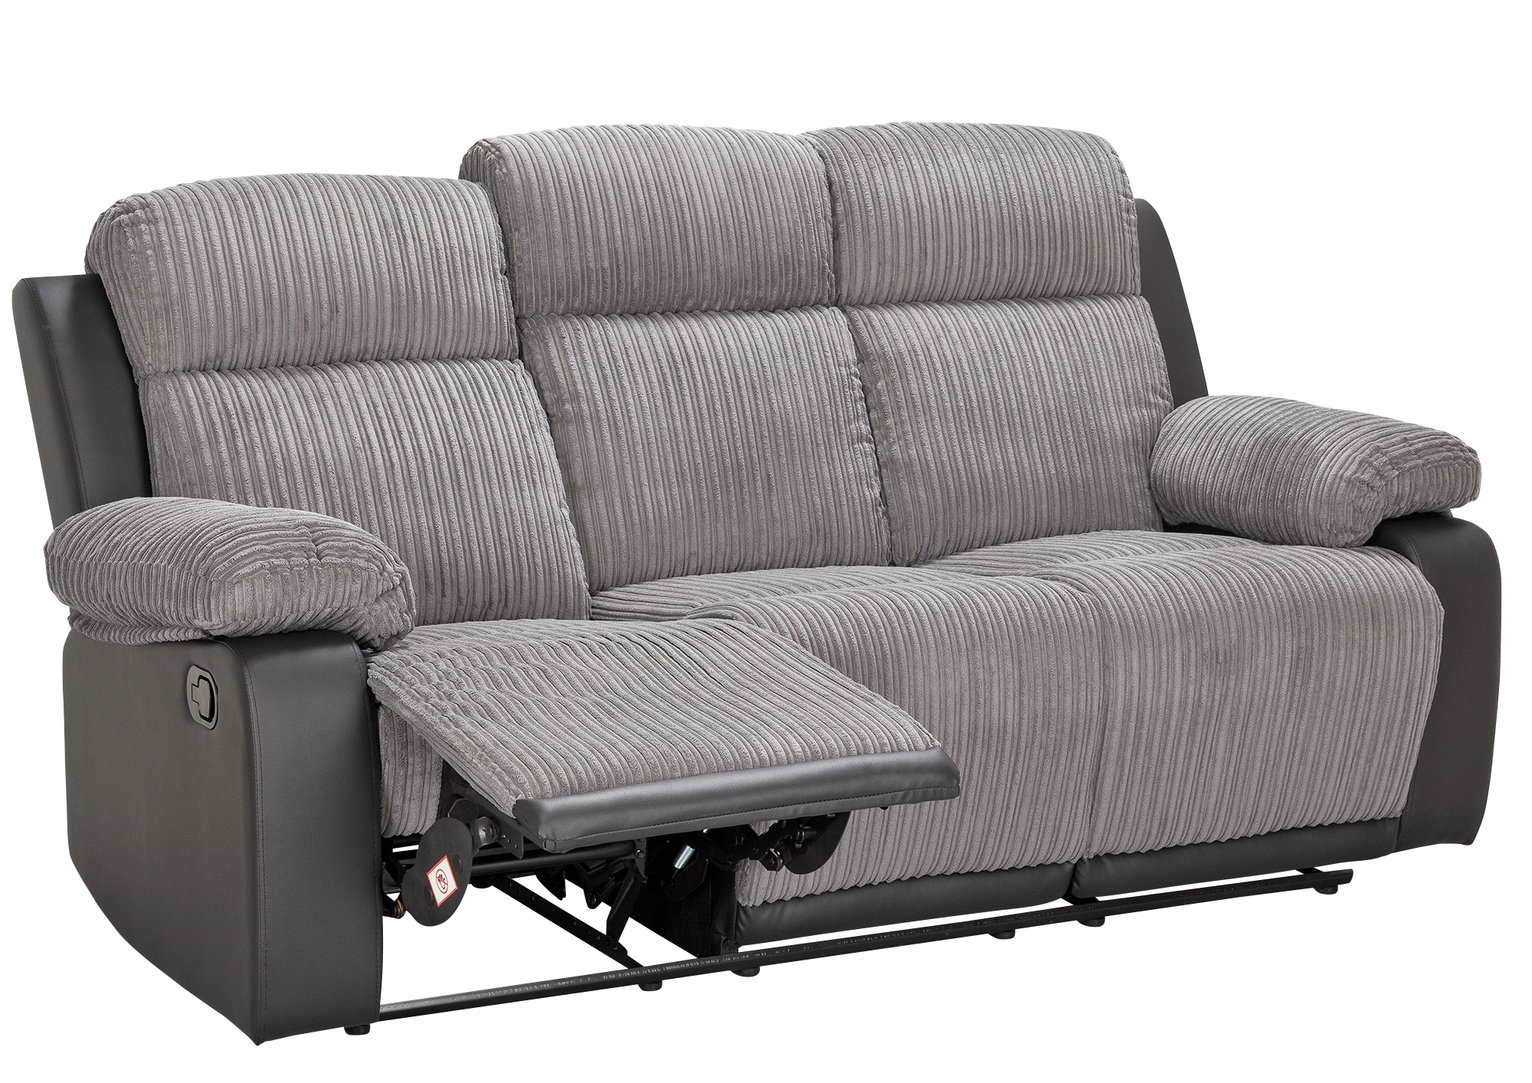 Argos Home Bradley 3 Seater Fabric Recliner Sofa - Charcoal